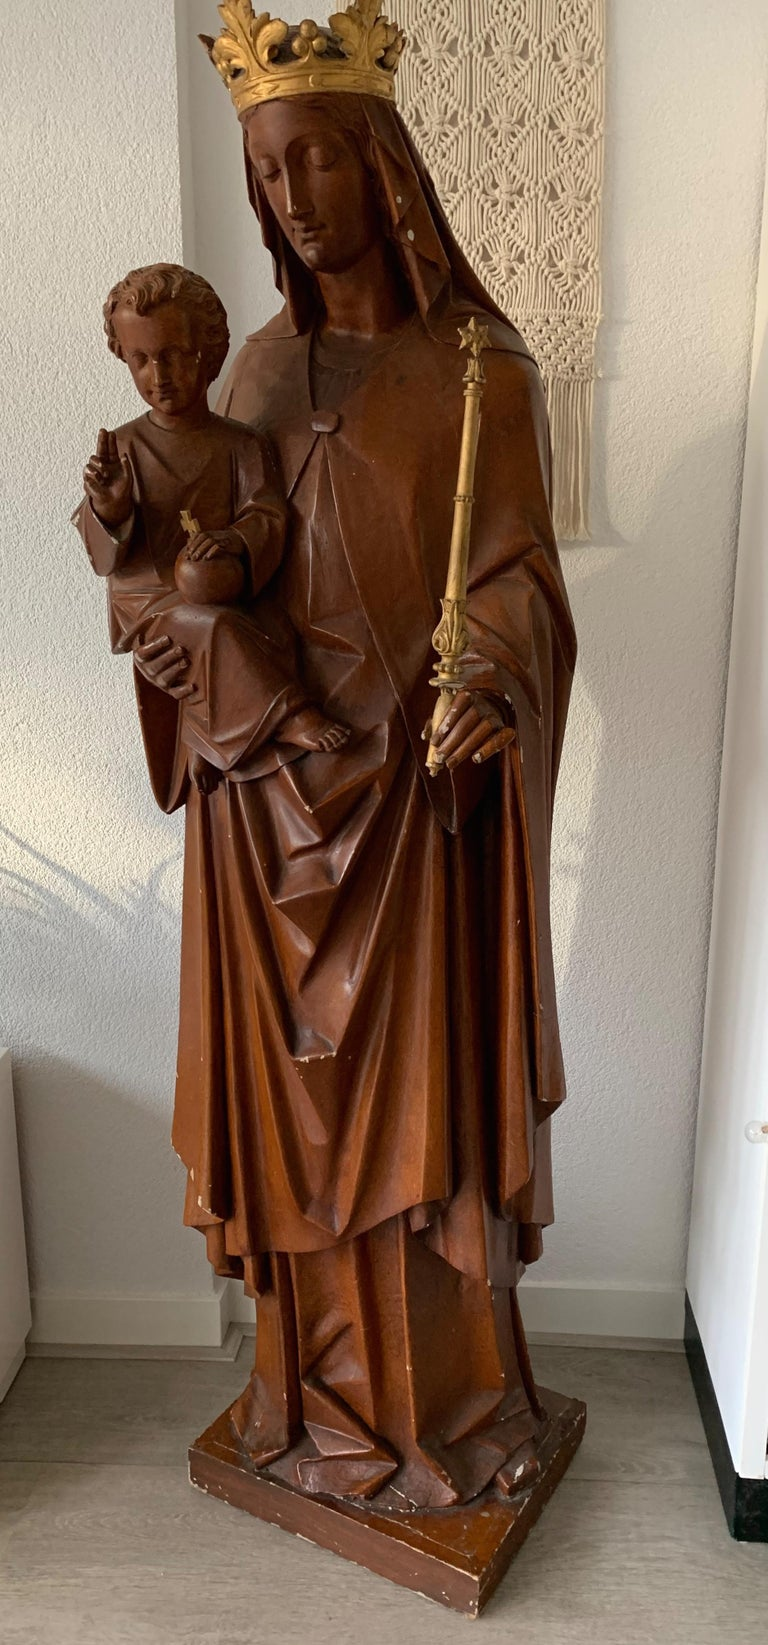 Antique Lifesize Mary and Child Jesus Gothic Revival Wooden Church Sculpture For Sale 12